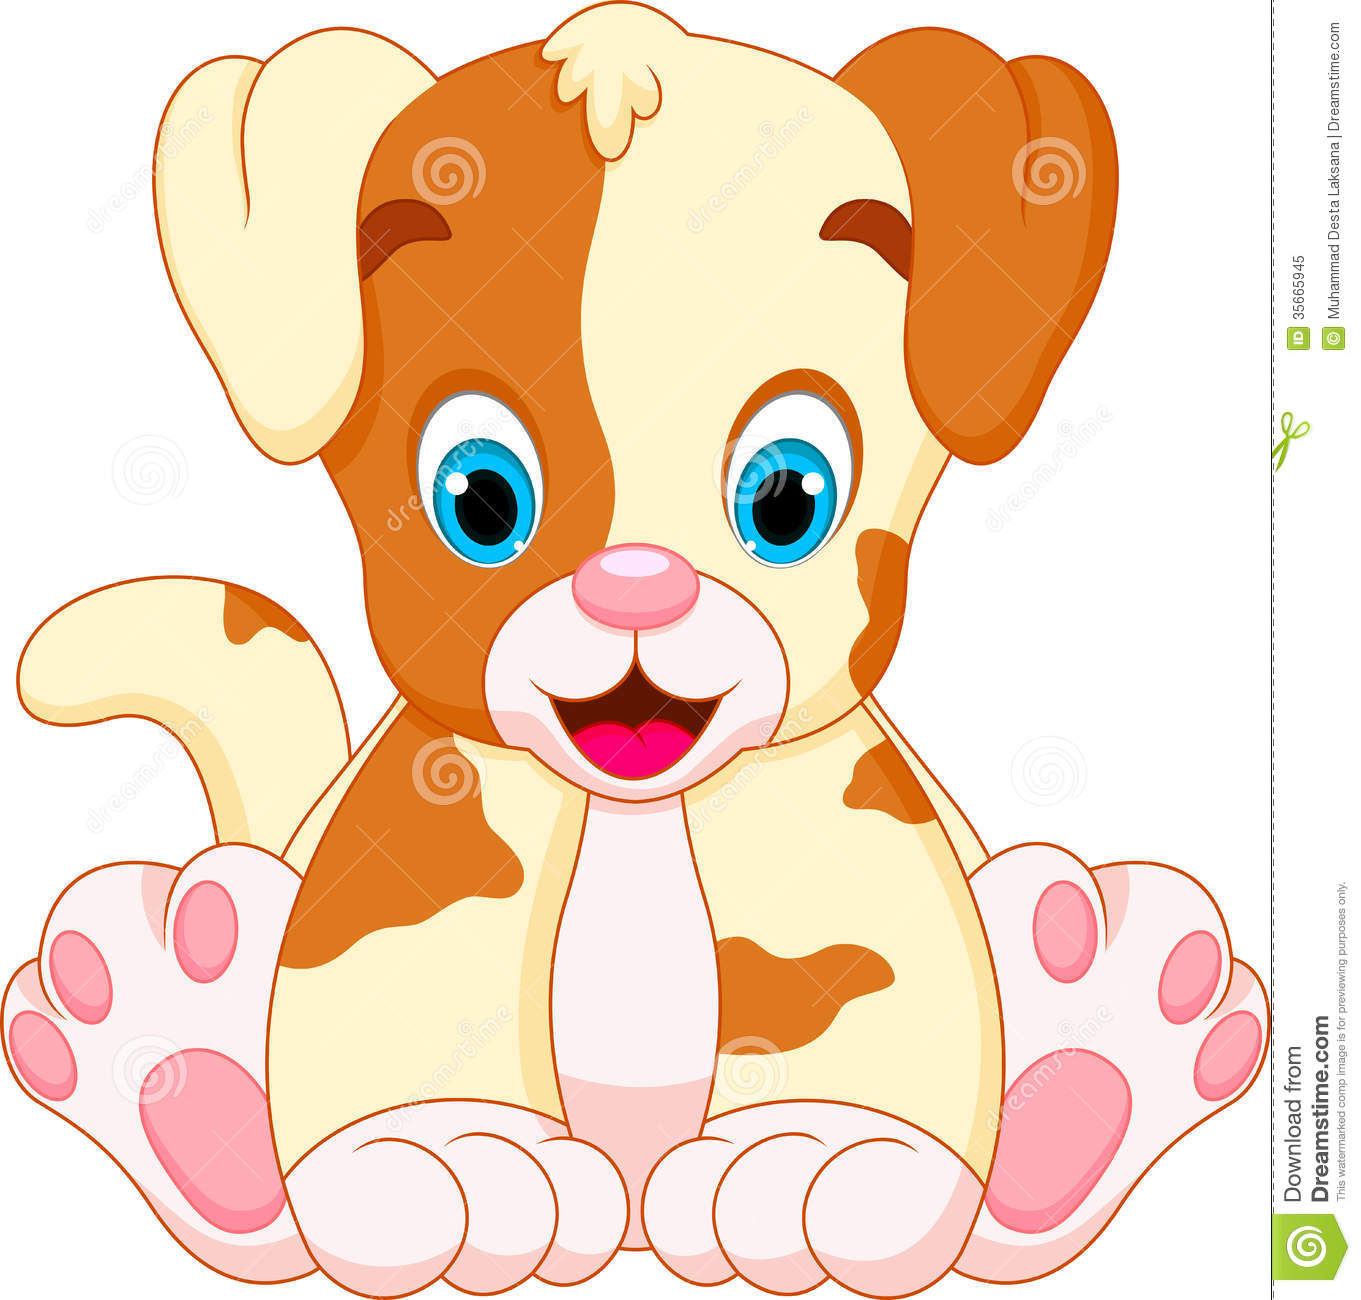 cute puppy cartoon royalty free stock photo image 35665945 schnauzer clipart free schnauzer clip art black and white